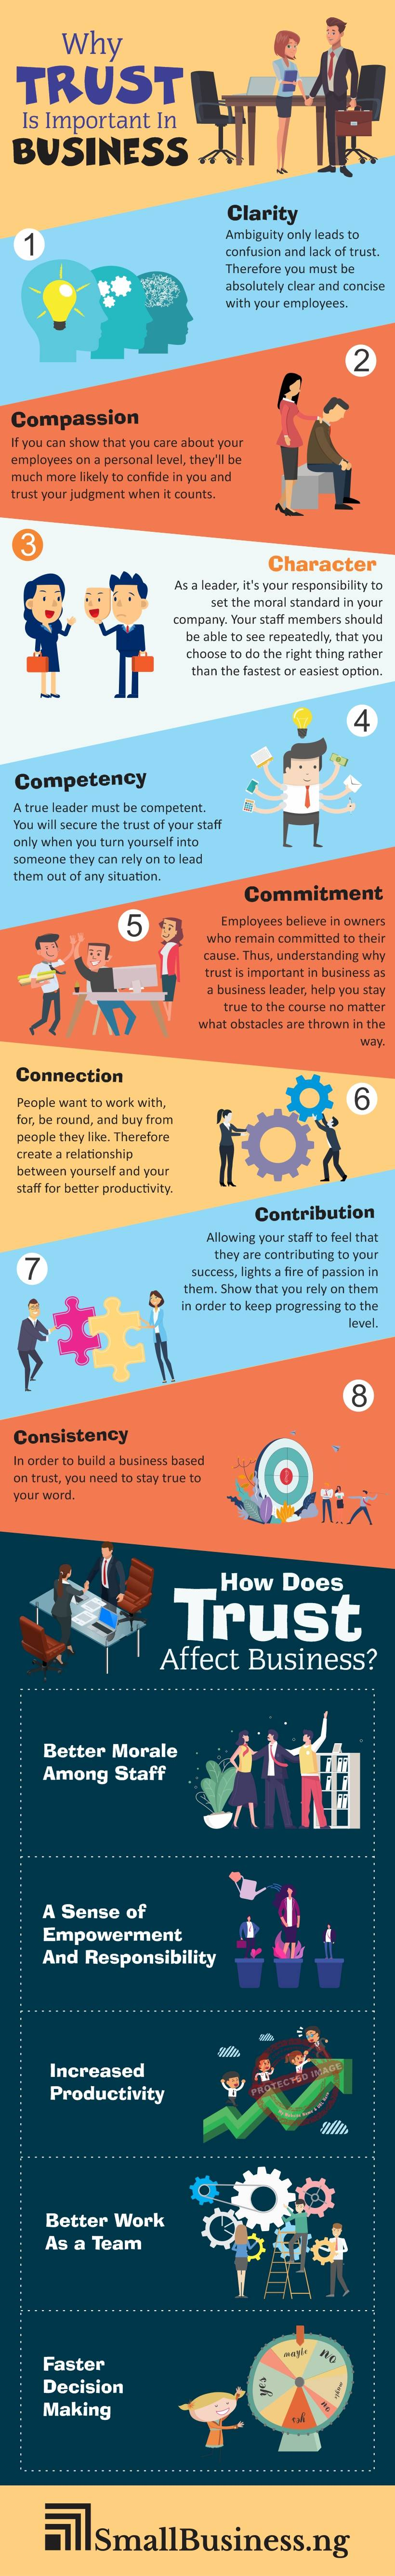 Why Trust Is Important In Business Infographic